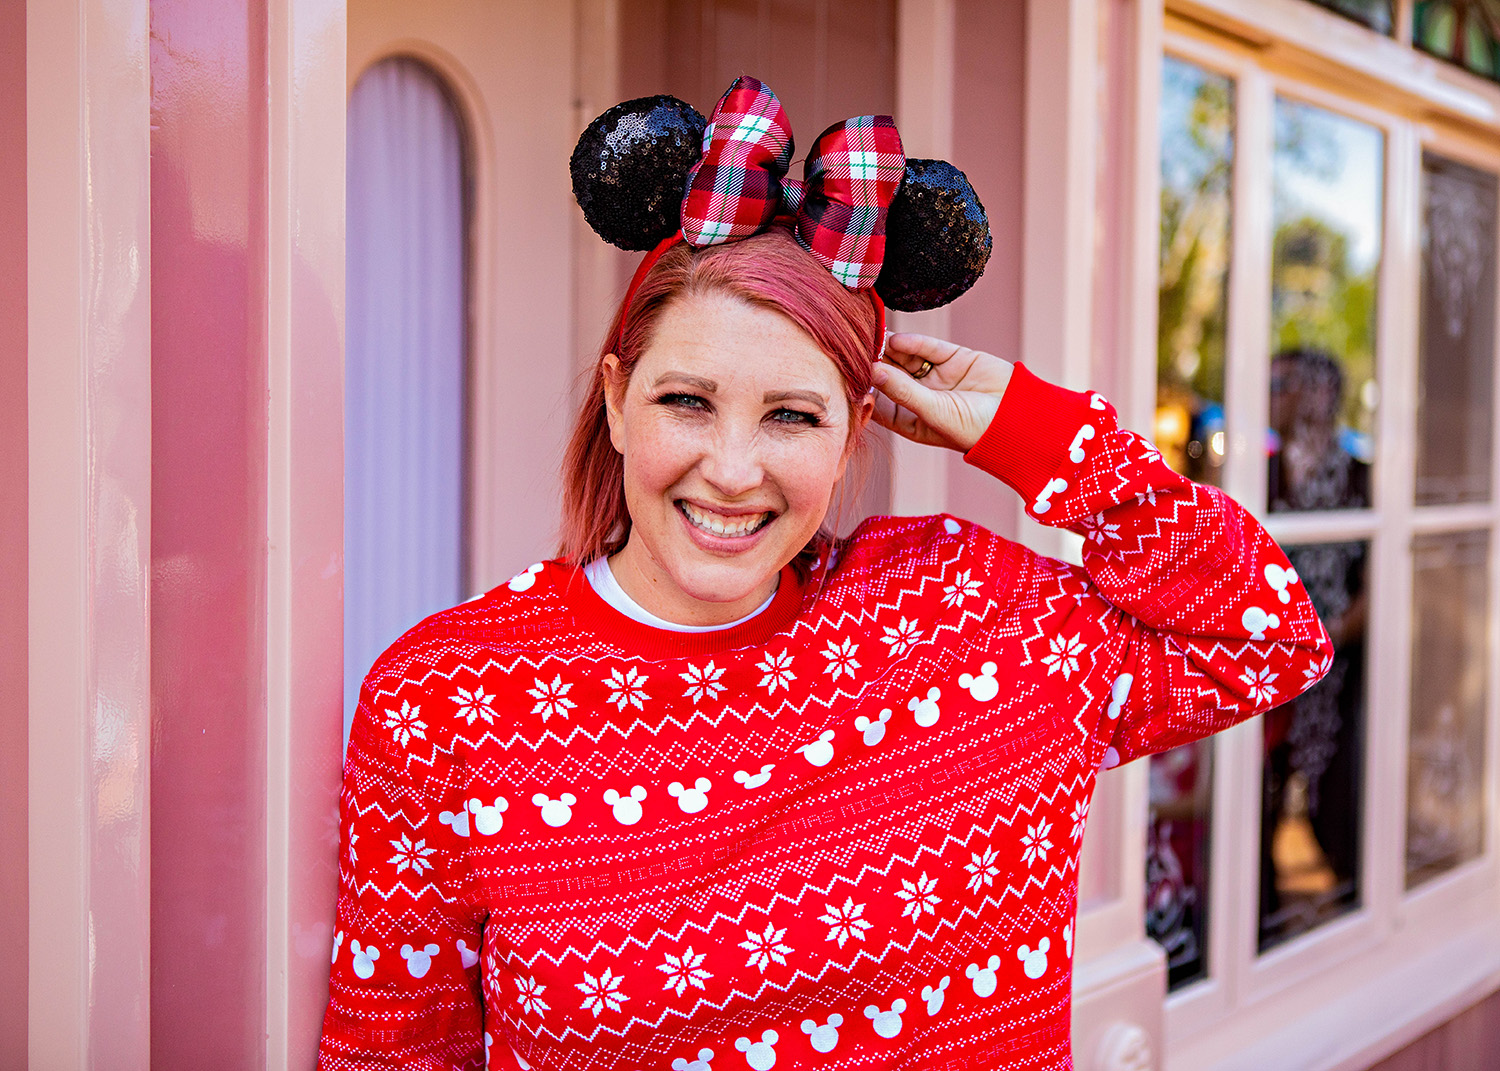 Looking for the perfect Disneyland outfits to wear for Disneyland Holidays? I'm breaking down what to wear to Disneyland Christmas 2018 by park, and sharing my must haves for fun days at this year's celebration!